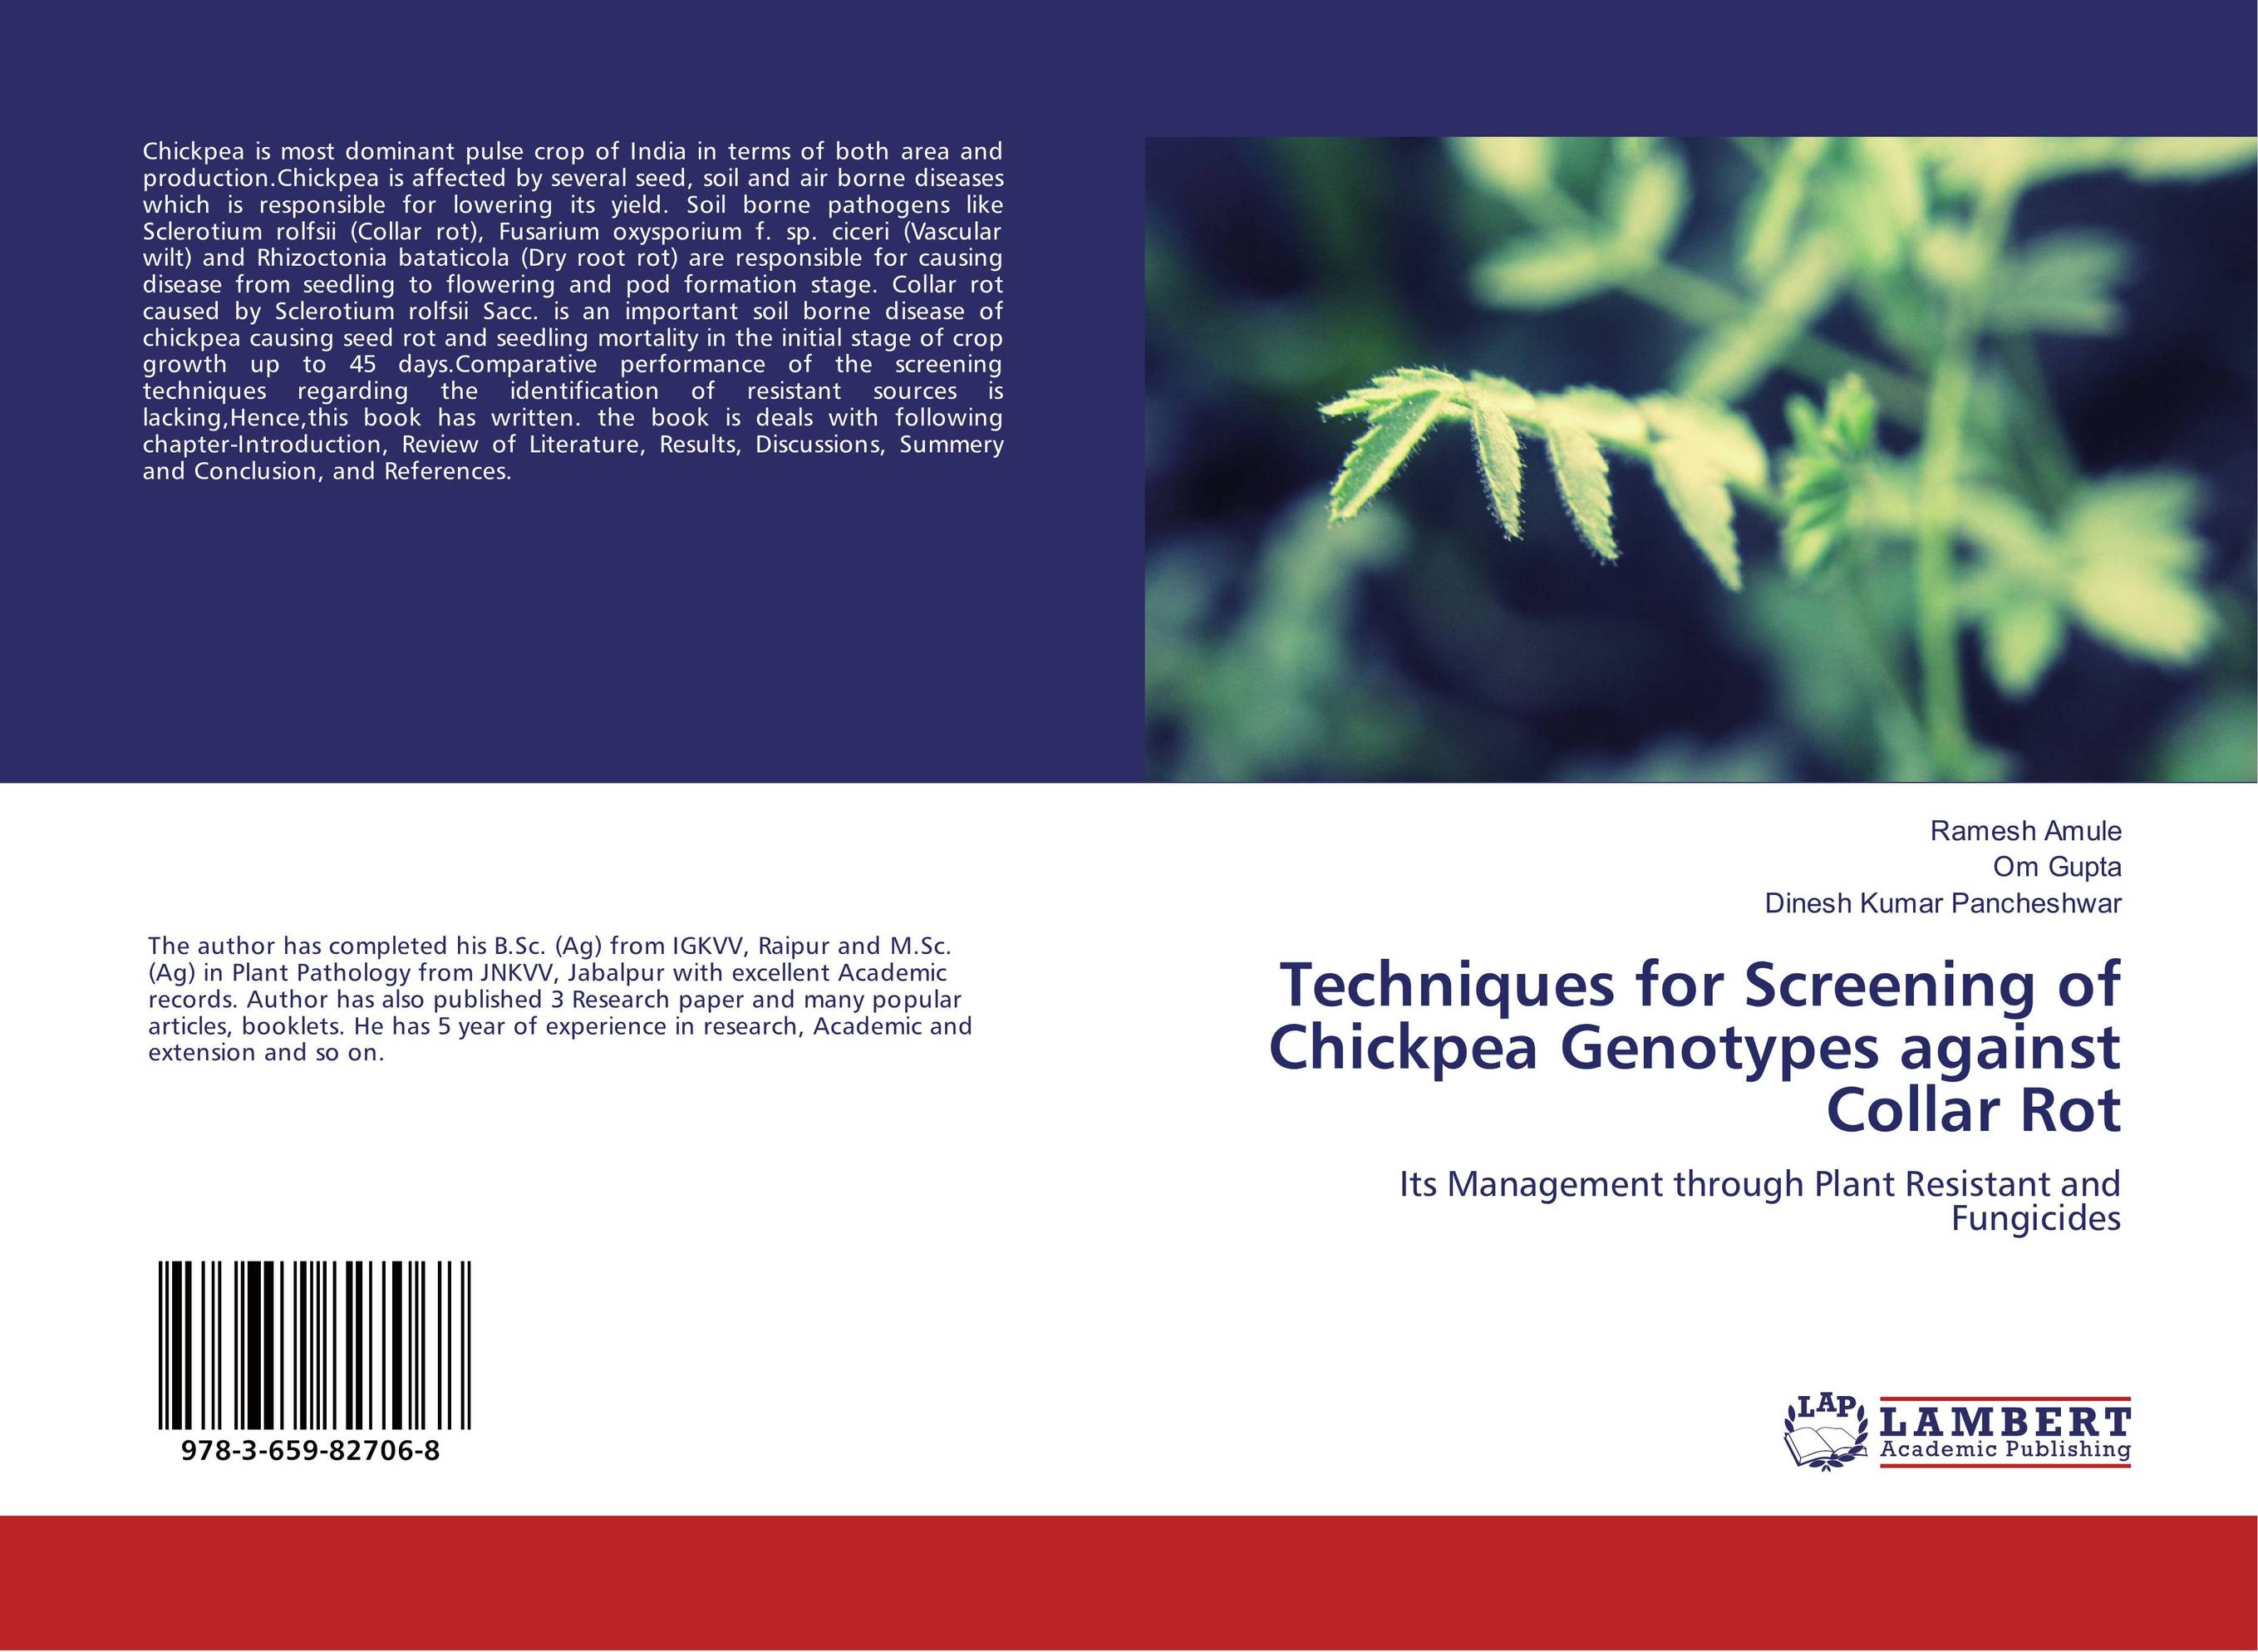 Techniques for Screening of Chickpea Genotypes against Collar Rot h n gour pankaj sharma and rakesh kaushal pathological aspects and management of root rot of groundnut